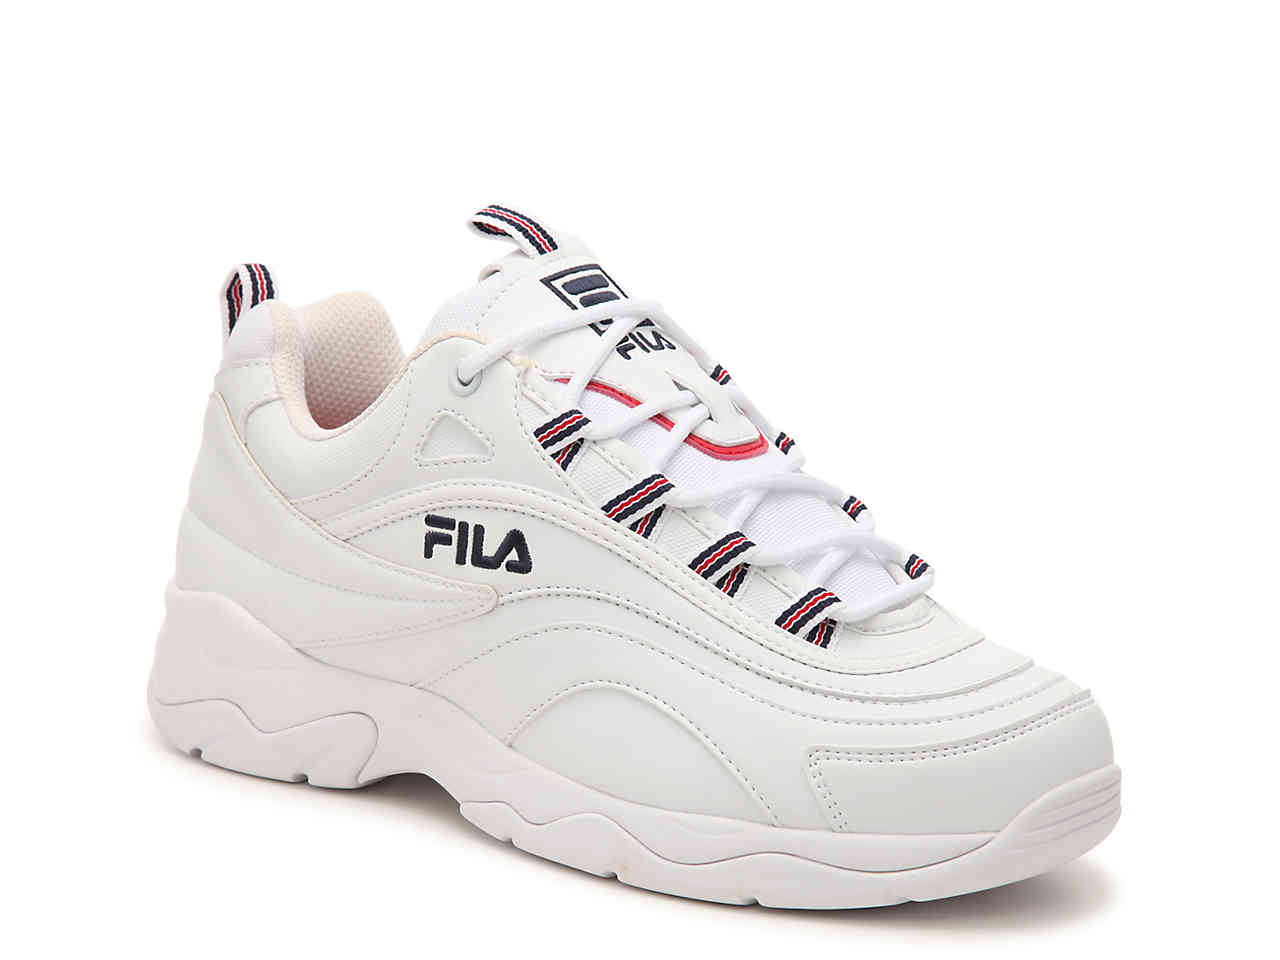 Fila Ray : Balenciaga & FILA Shoes for Men, Women & Kids